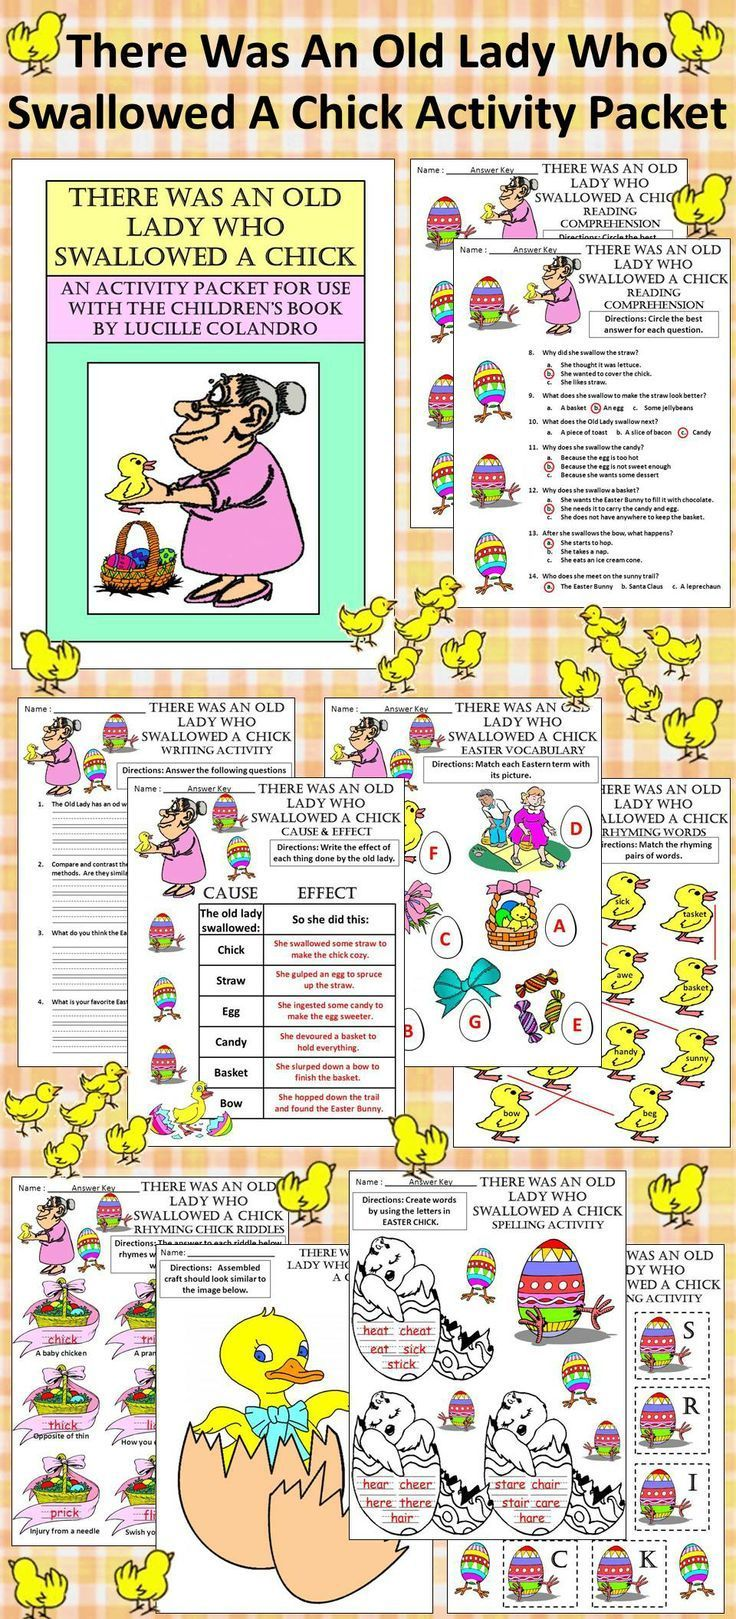 There was an Old Lady Who Swallowed a Chick Easter Activity Packet: This colorful activity packet complements the children's book, There Was an Old Lady Who Swallowed a Chick, by Lucille Colandro.  Contents include: * Reading Comprehension Quiz * Rhyming